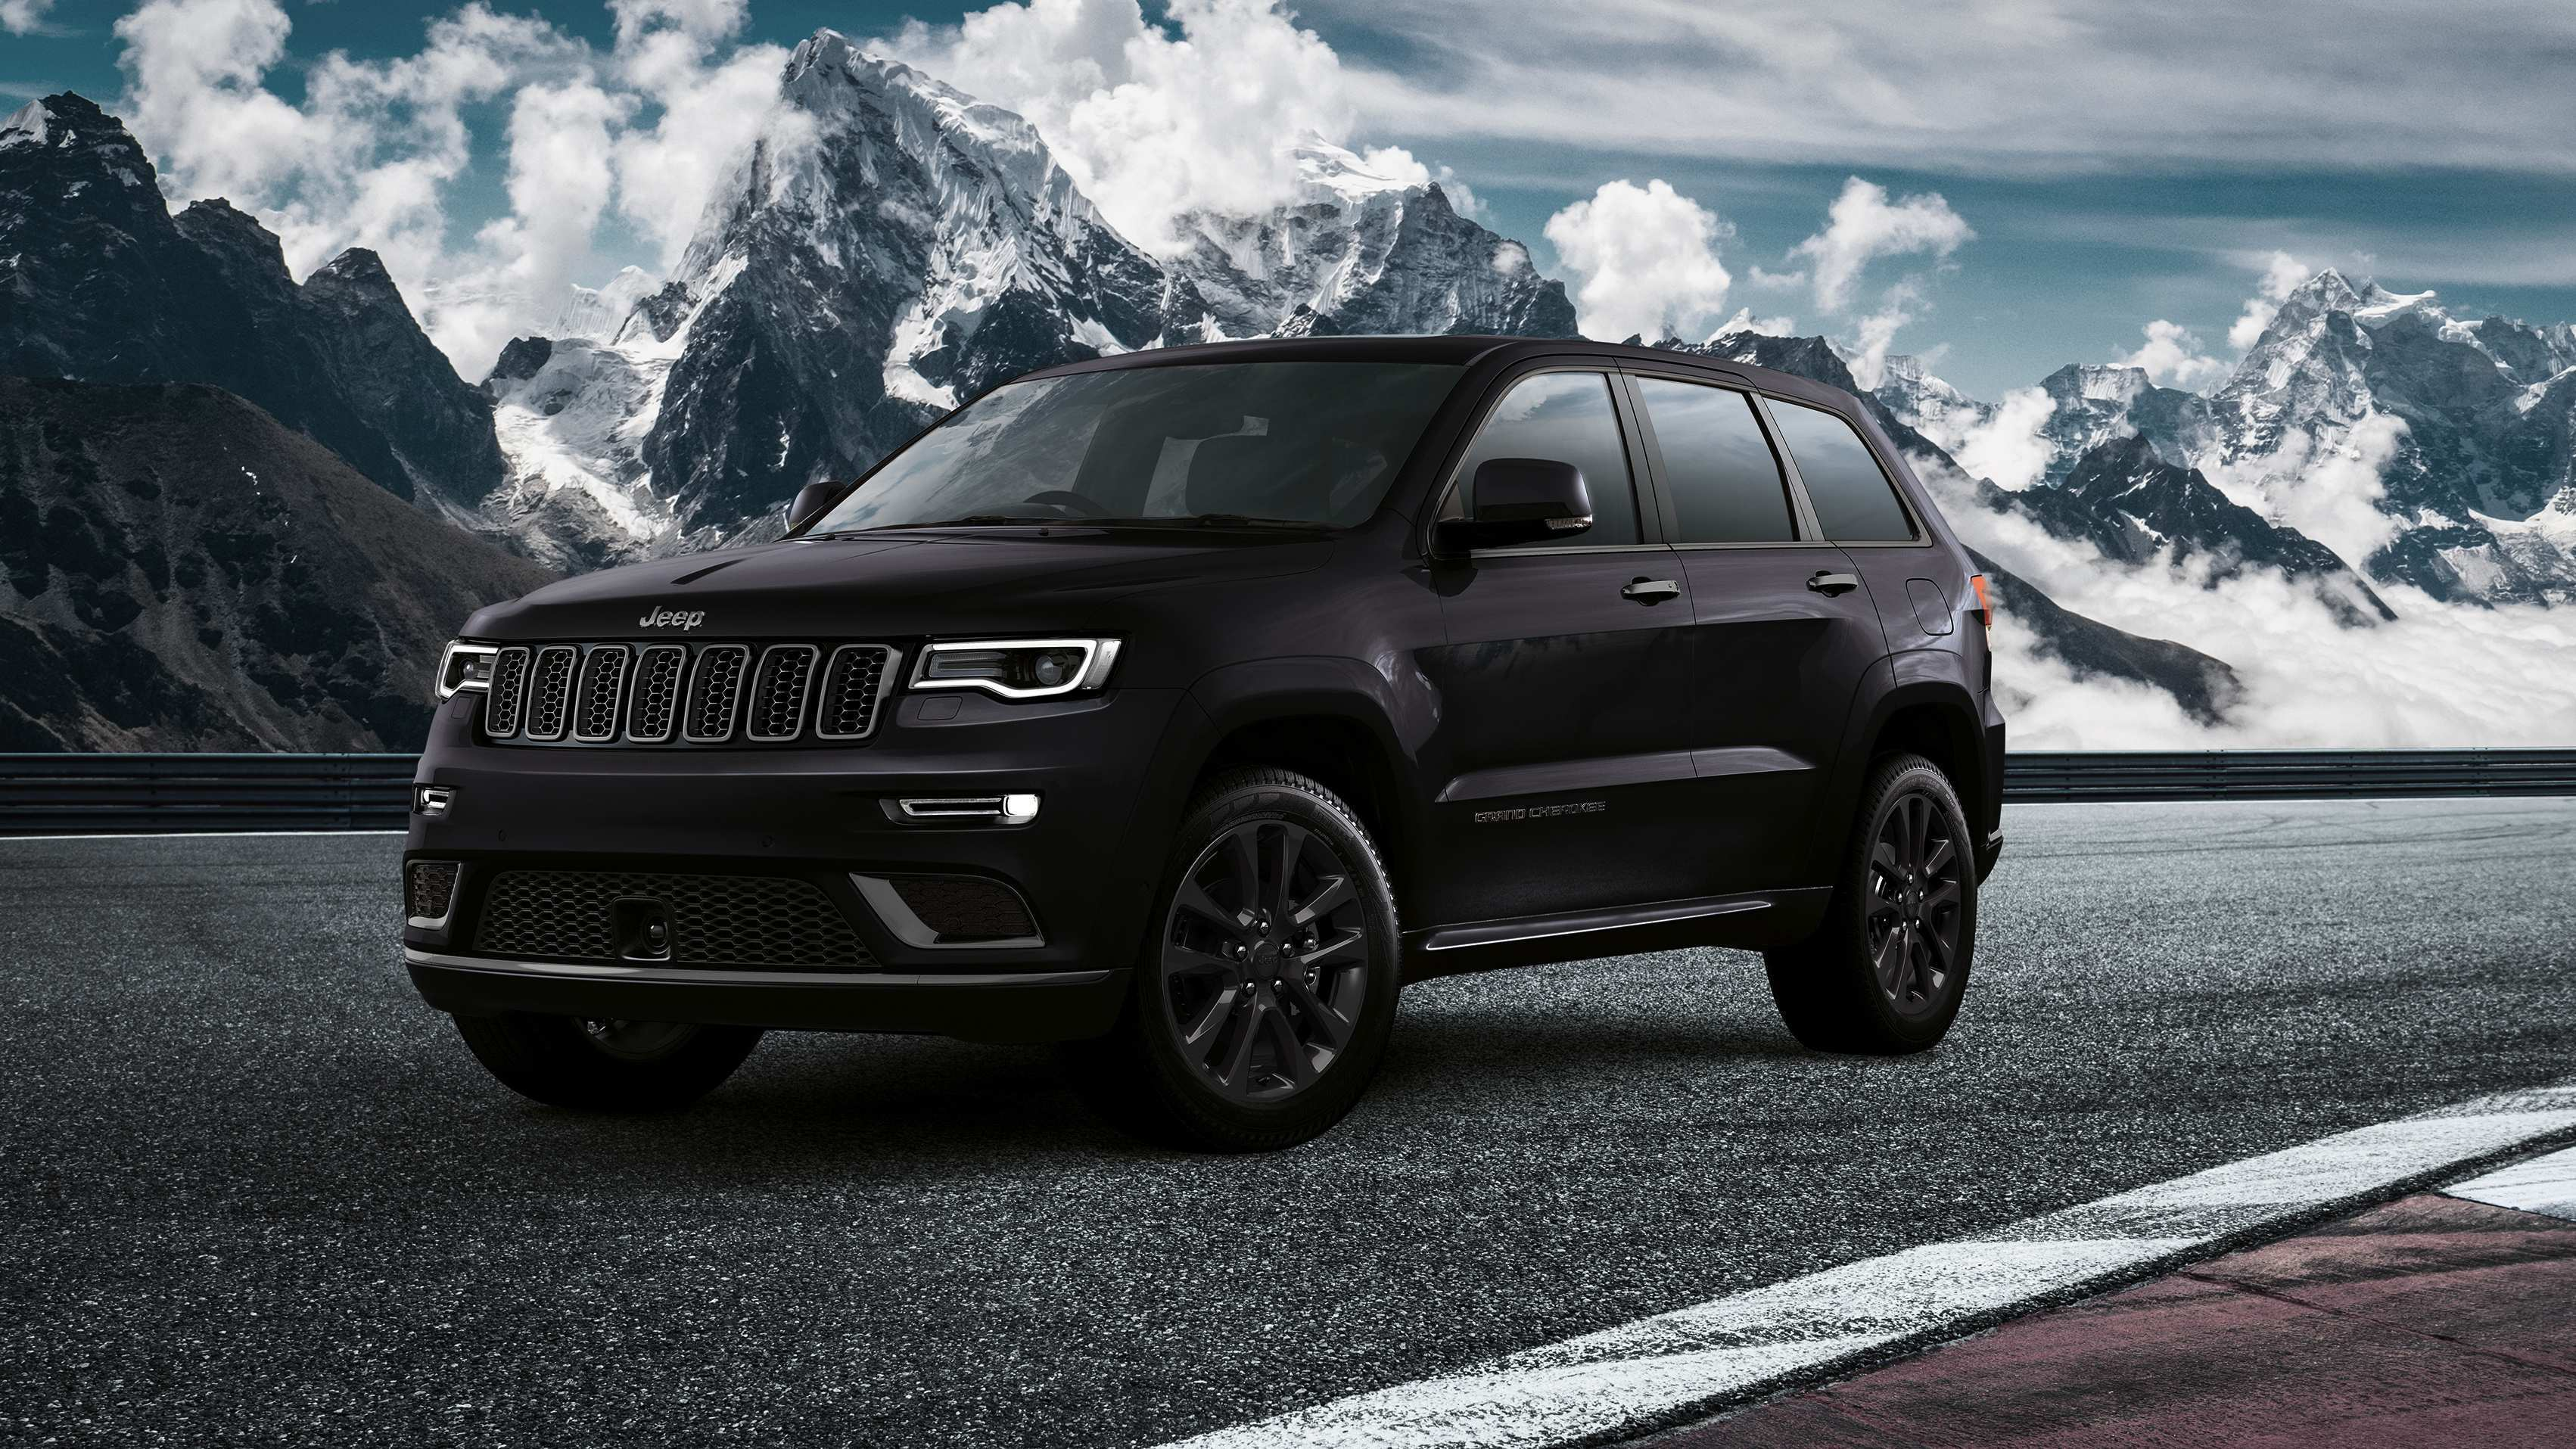 36 All New The Grand Cherokee Jeep 2019 Exterior And Interior Review Performance and New Engine by The Grand Cherokee Jeep 2019 Exterior And Interior Review